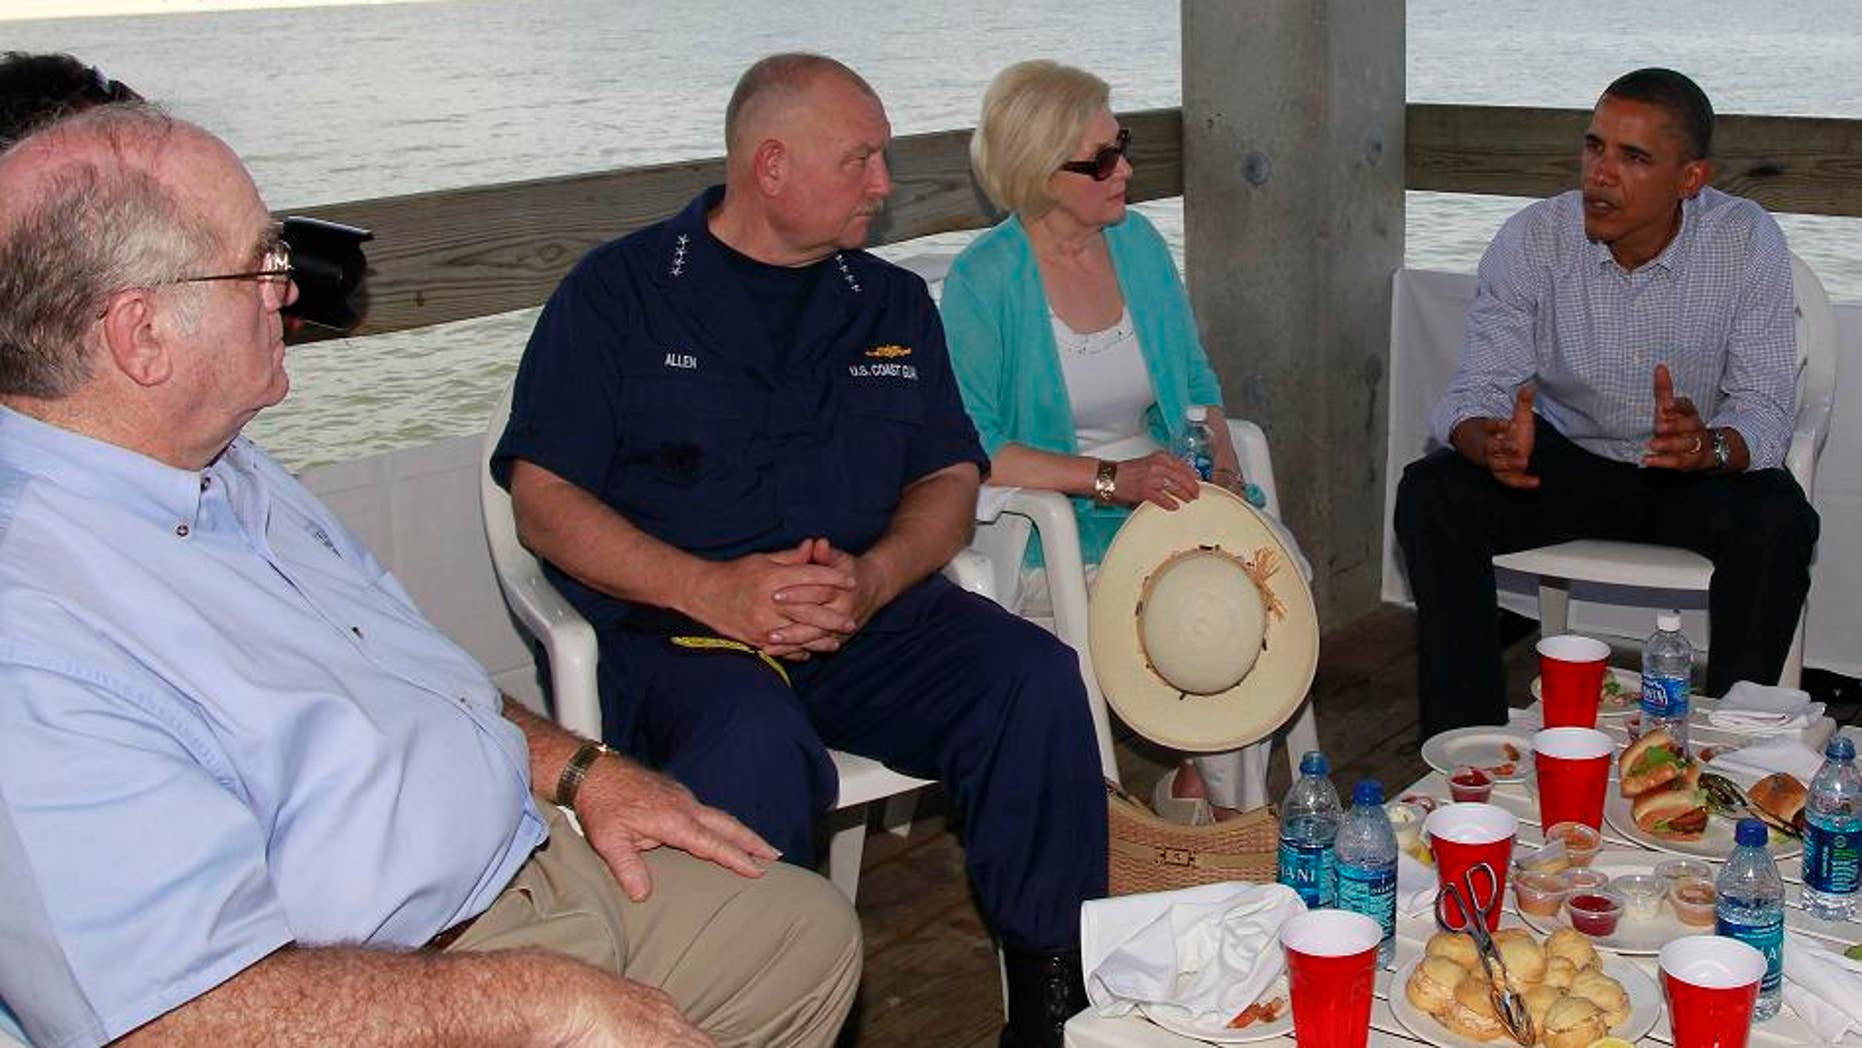 June 14: President Obama and National Incident Commander Thad Allen meet with residents affected by the BP Deepwater Horizon oil spill in Gulfport, Miss.